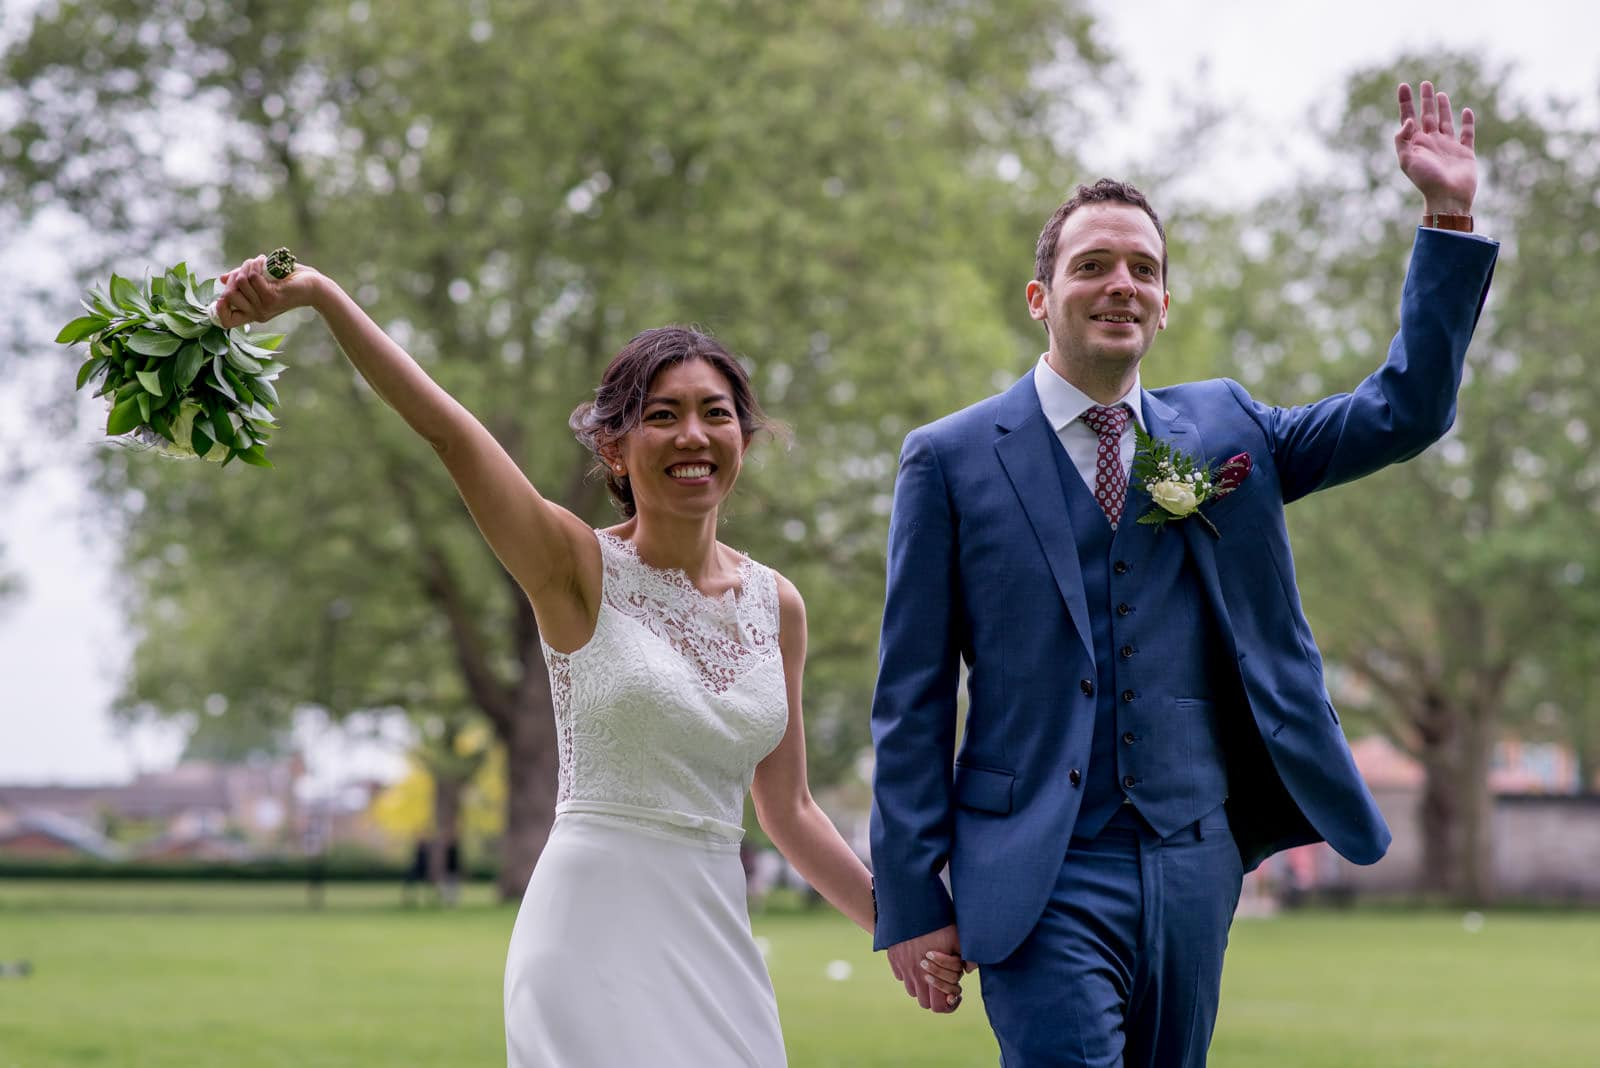 Bride and groom waving at their wedding at the London Fields Brewery